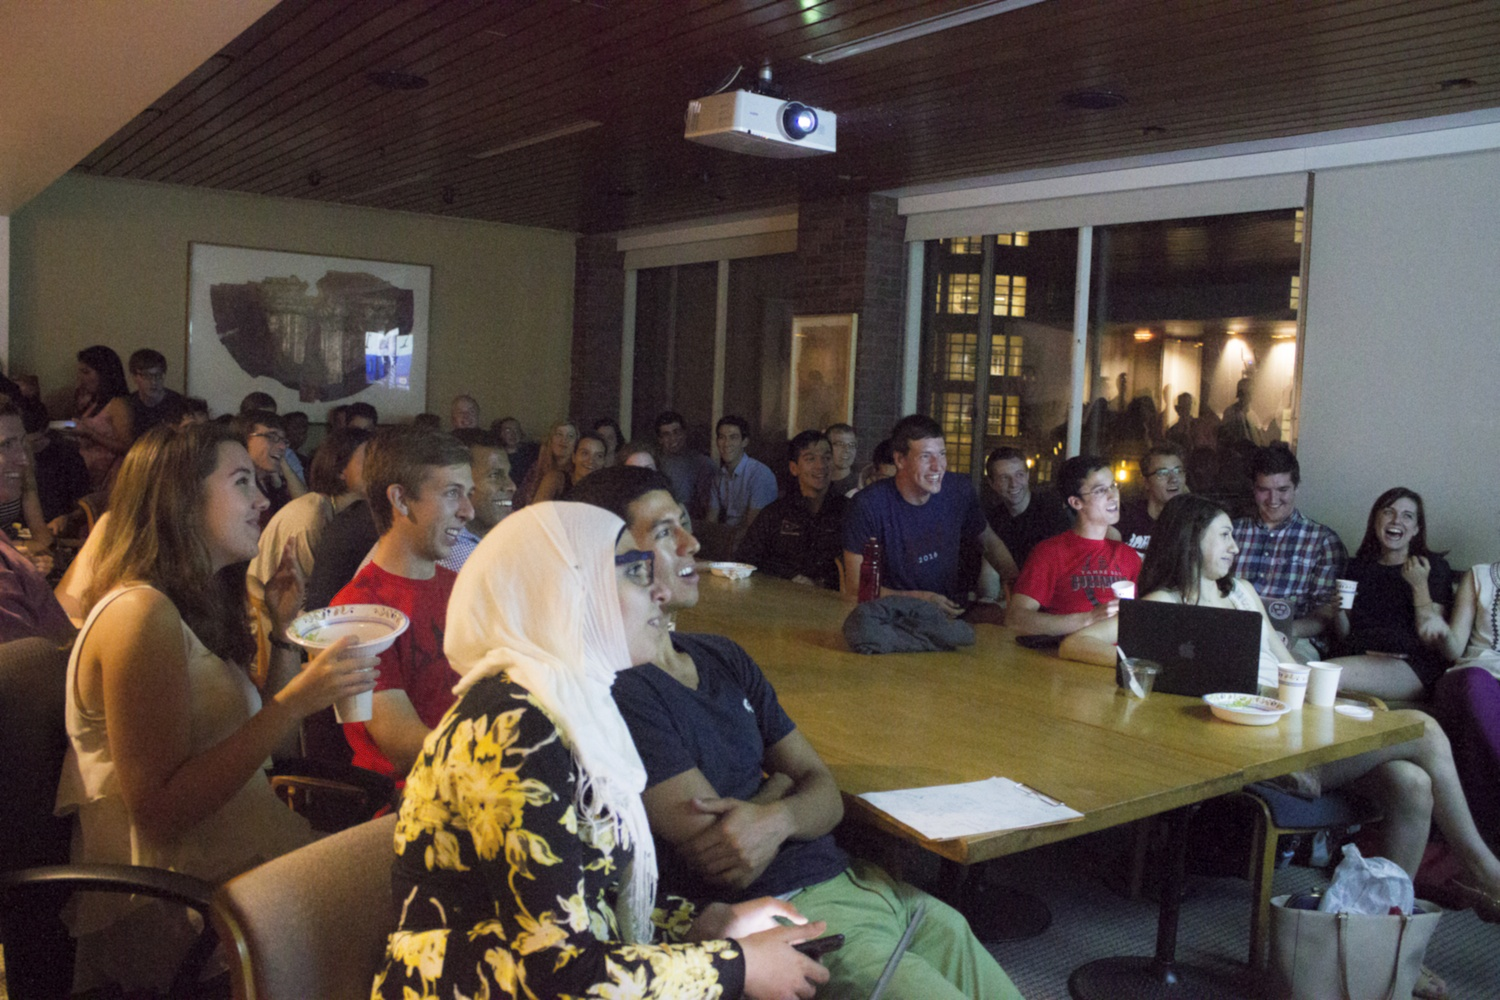 Members of the Harvard Republican Club and other students watch the Republican primary debate on CNN. The event filled three rooms at the IOP.